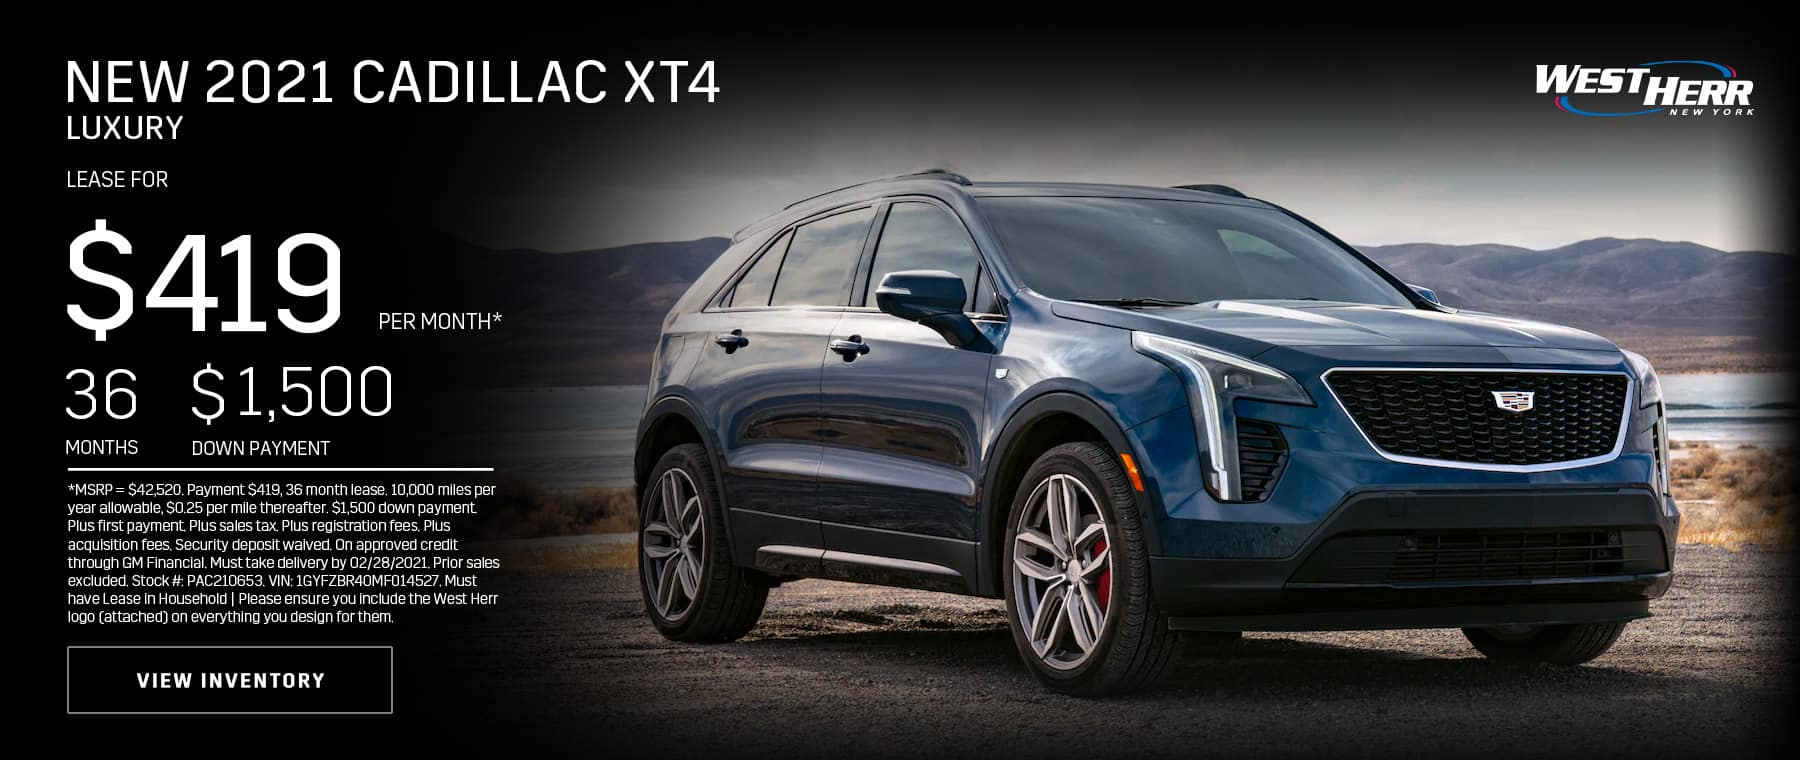 New 2021 Cadillac XT4 Luxury: Lease for $419/mo for 36 months